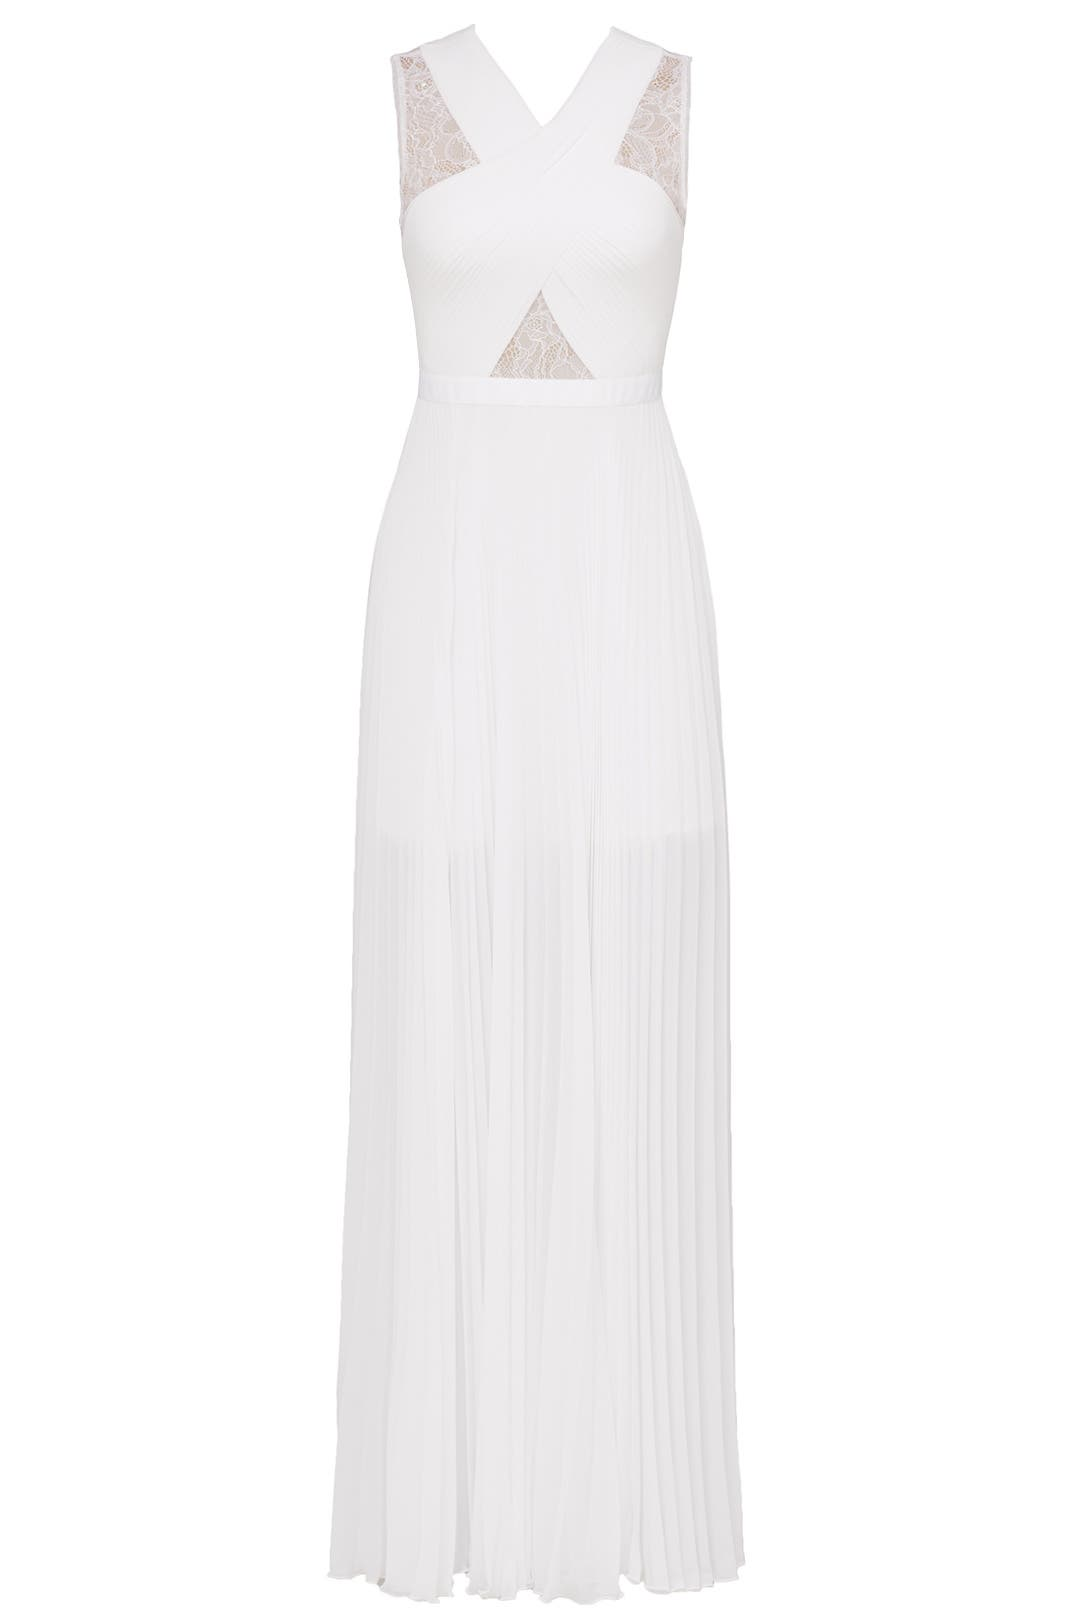 White Caia Gown by BCBGMAXAZRIA for $141 | Rent the Runway